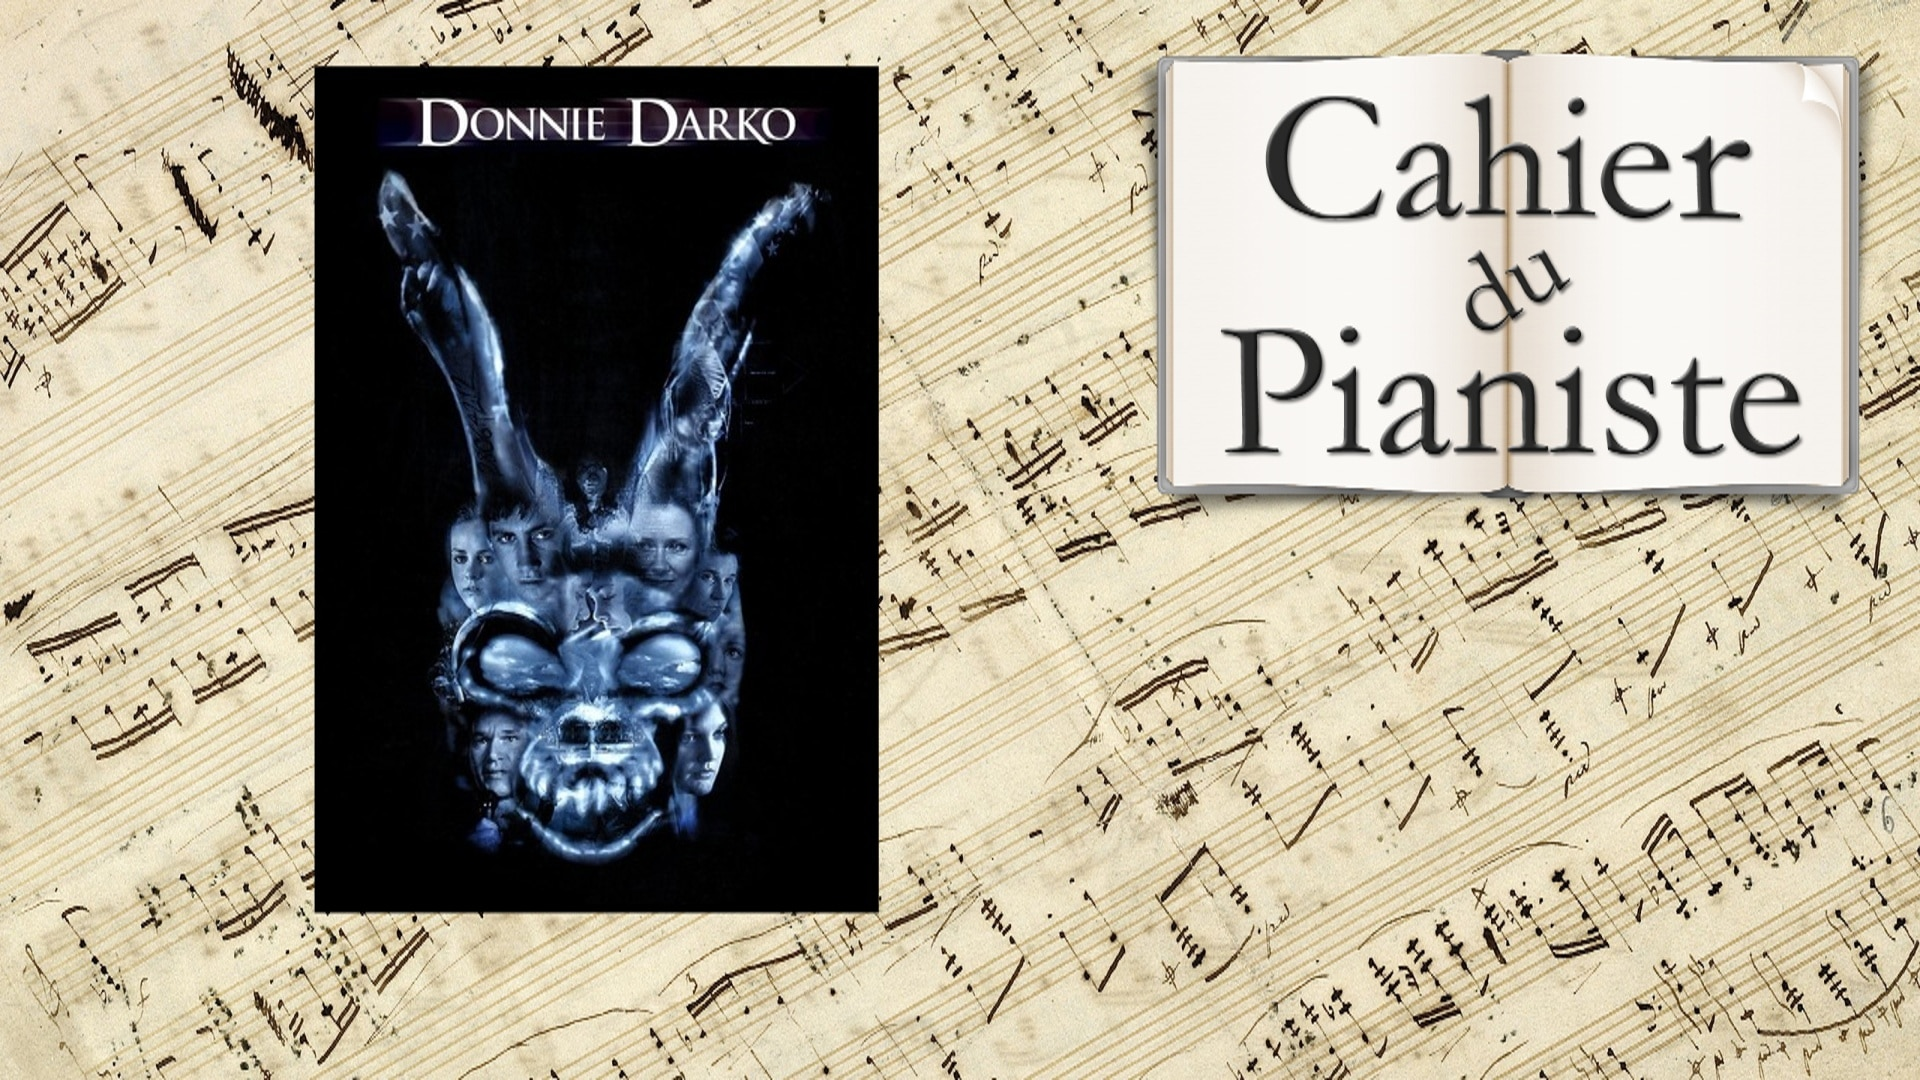 10_donnie darko